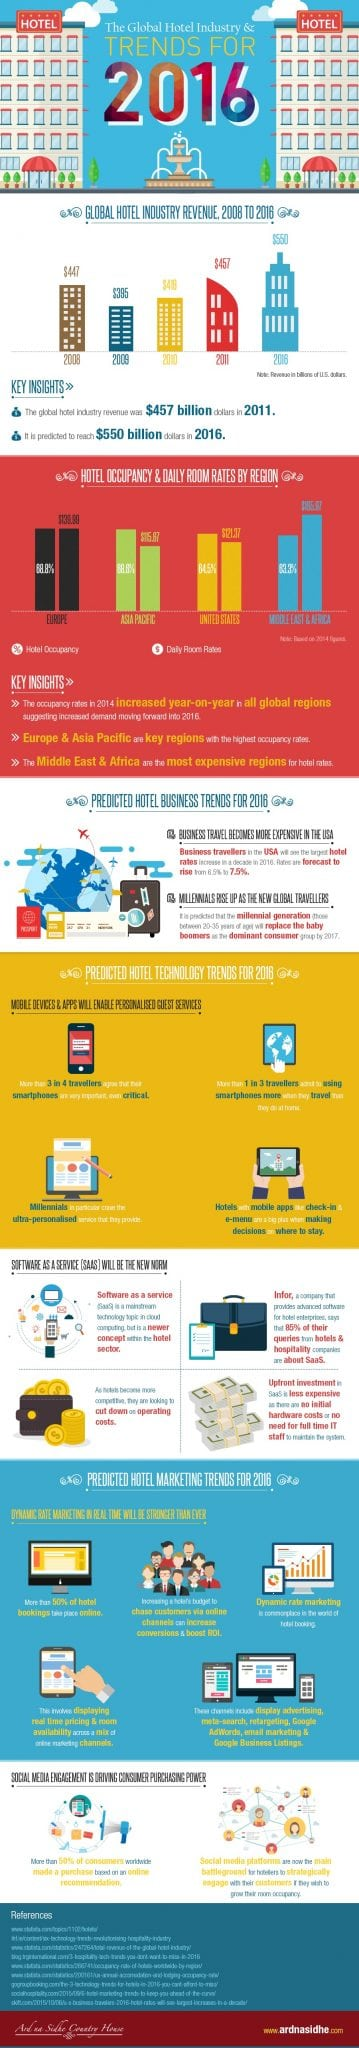 Photo of The Global Hotel Industry & Trends for 2016 [INFOGRAPHIC]